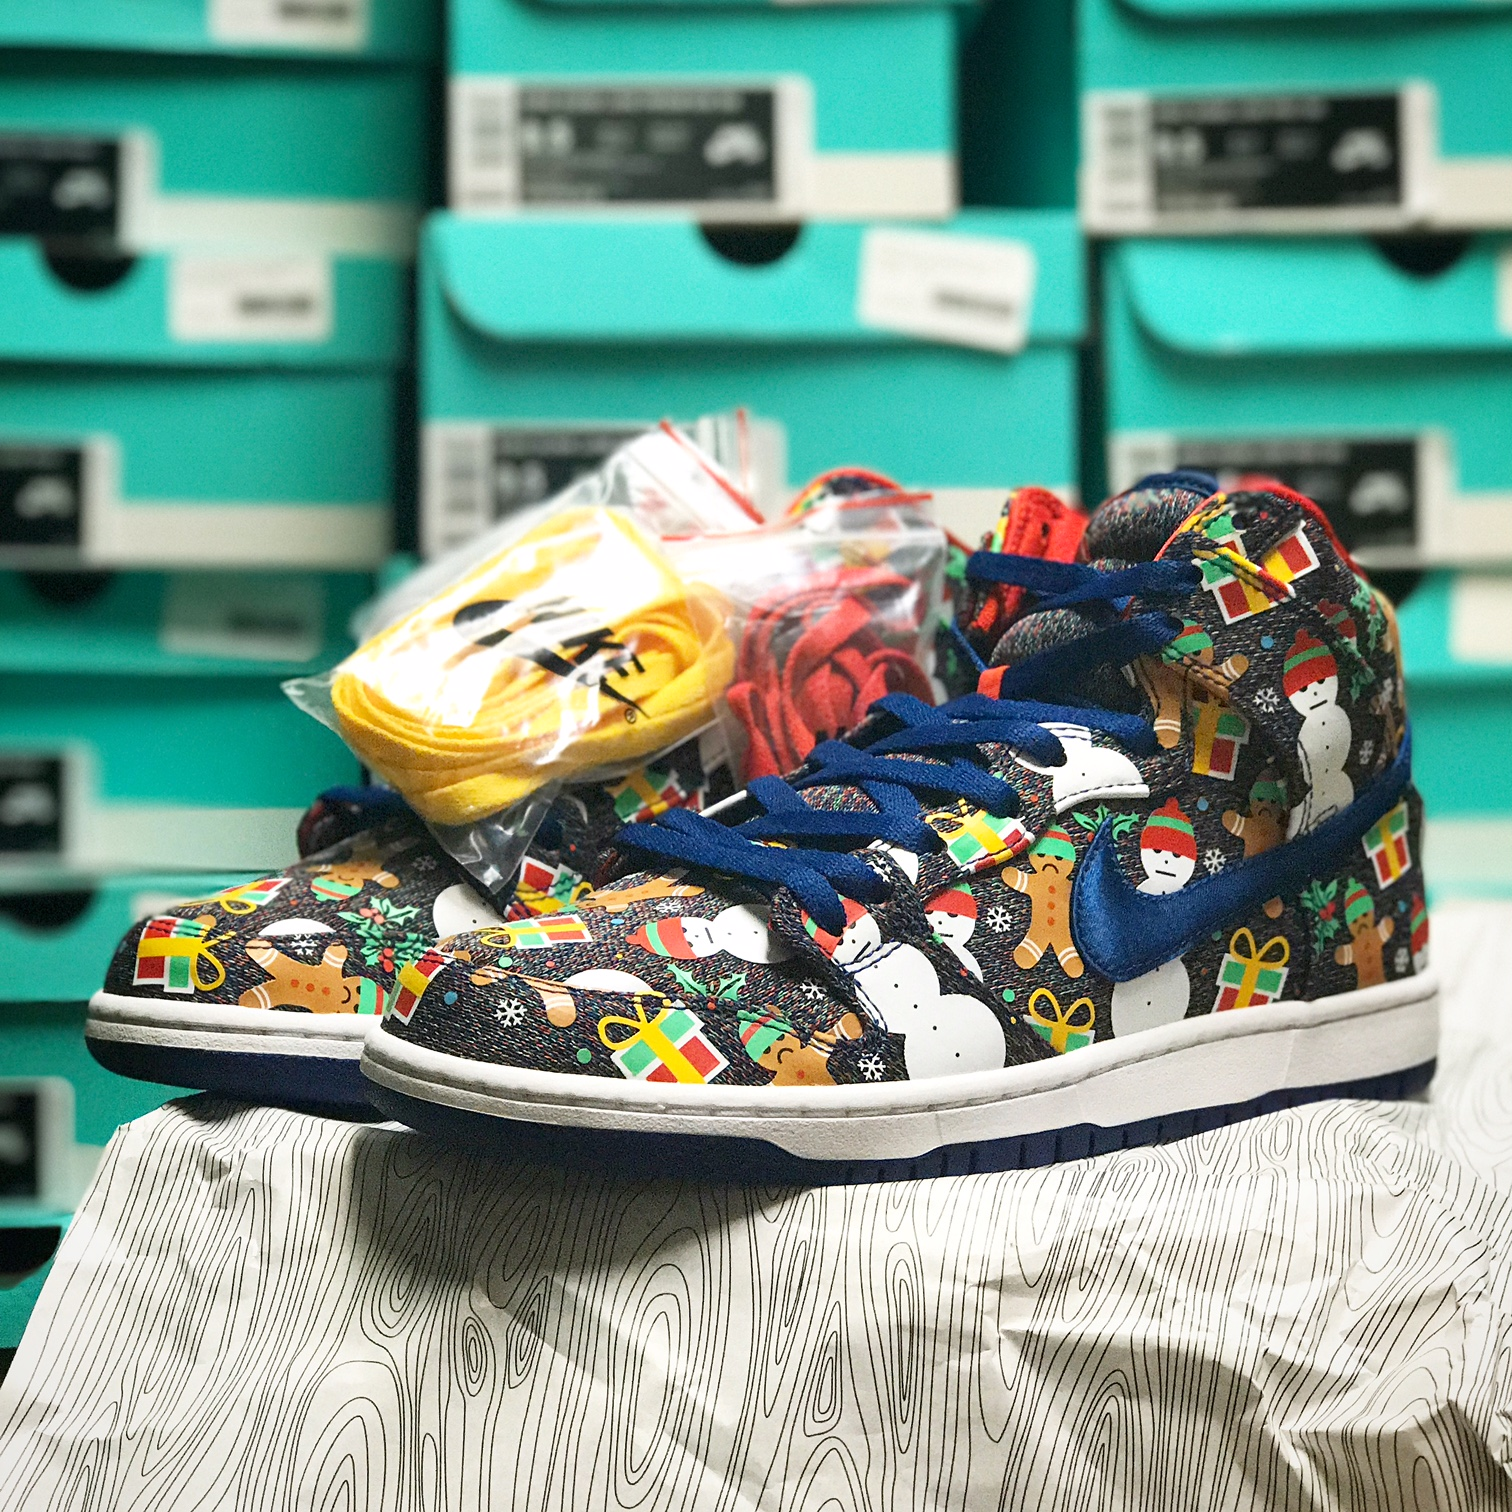 Galactic G SK8 Shop: Nike SB Dunk High Ugly Christmas Sweater